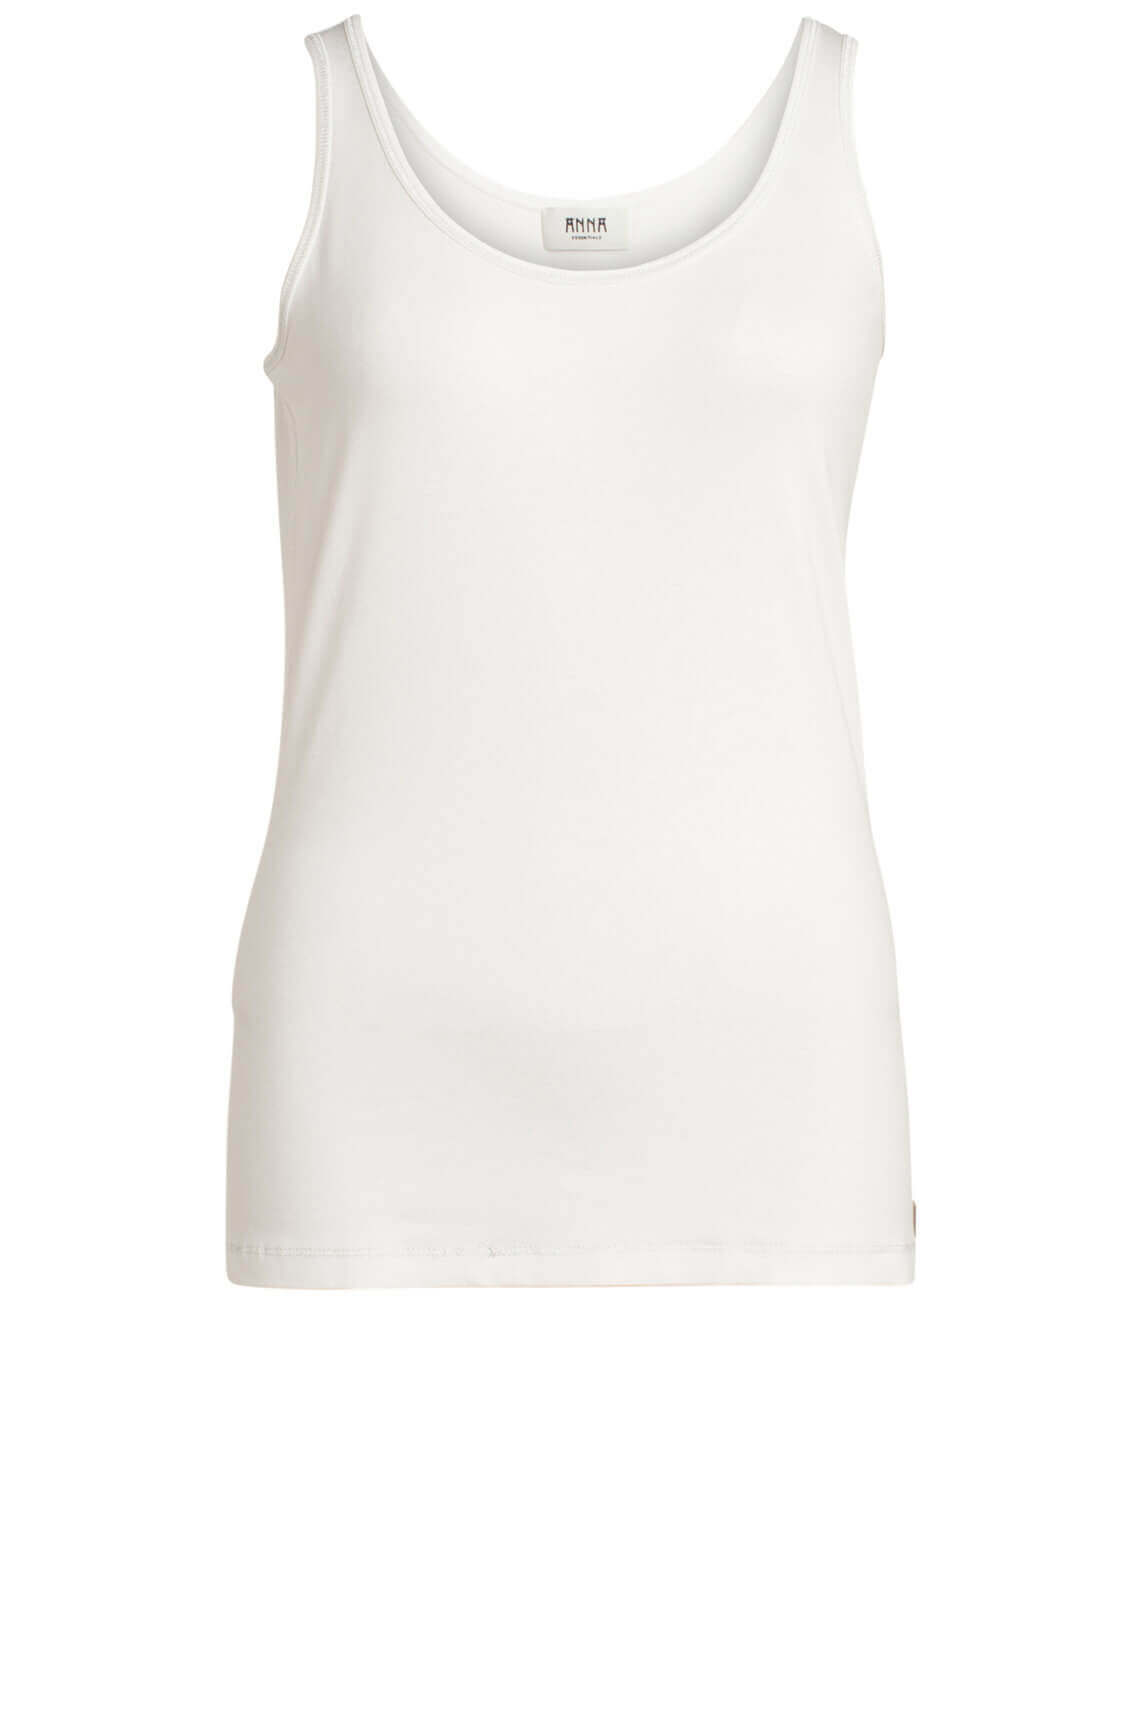 Anna Dames Top met lurex wit